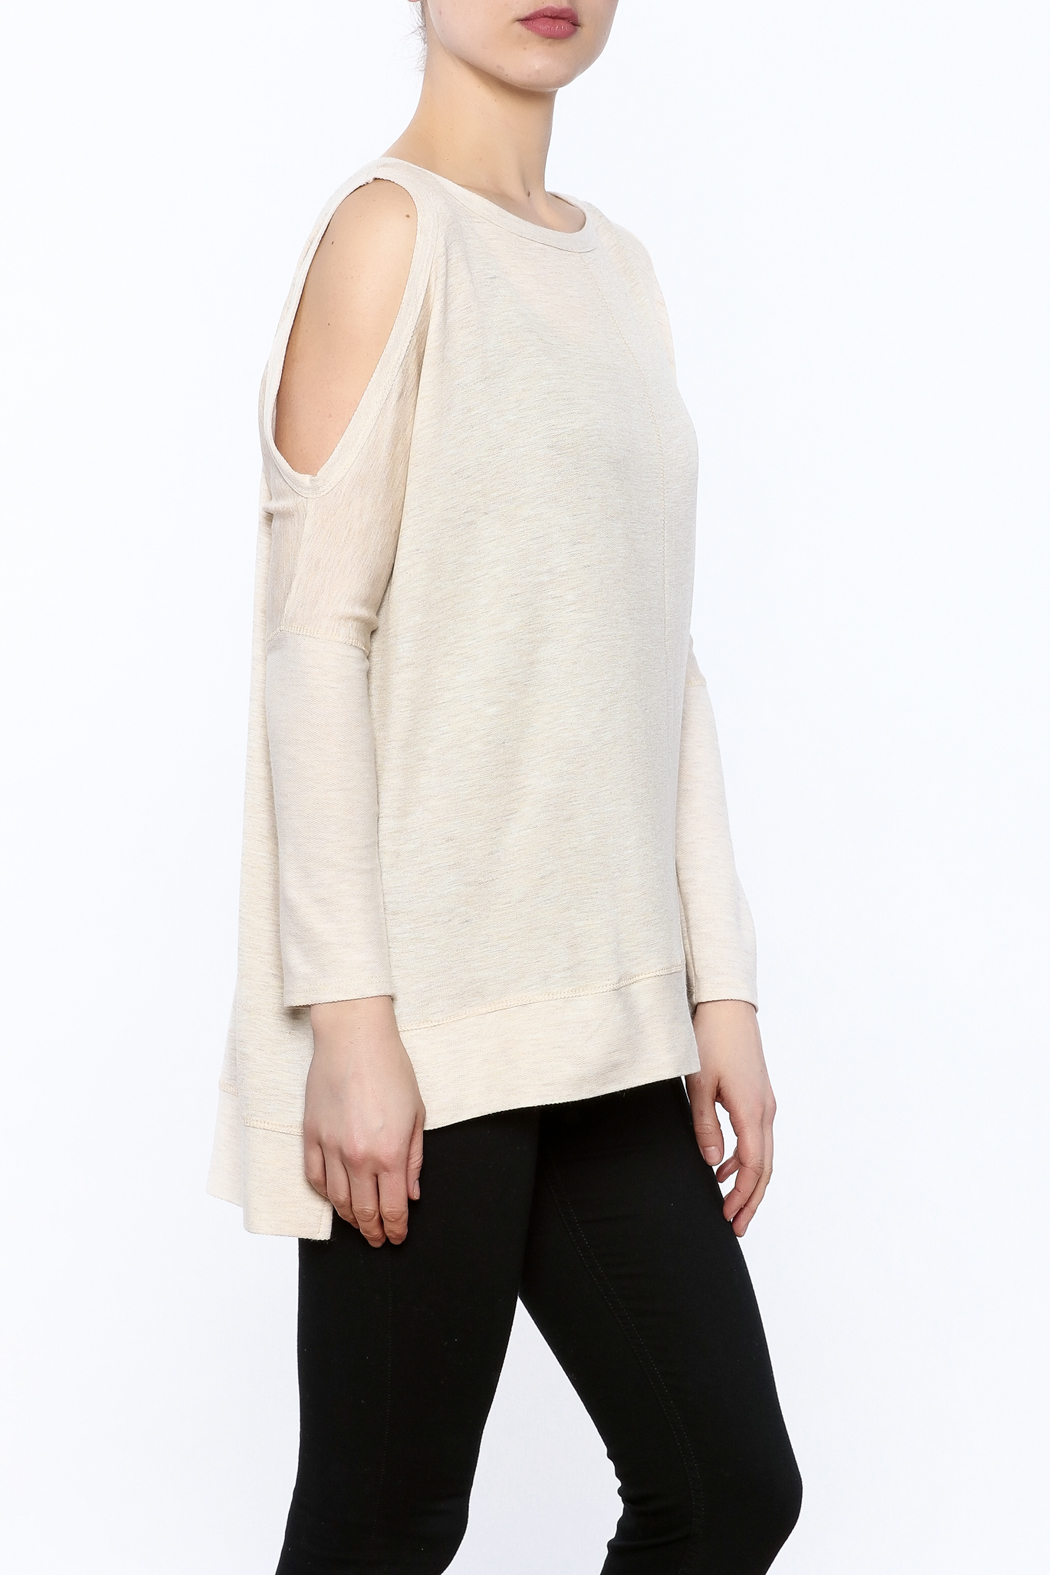 a.gain Grey Tunic Top - Front Cropped Image